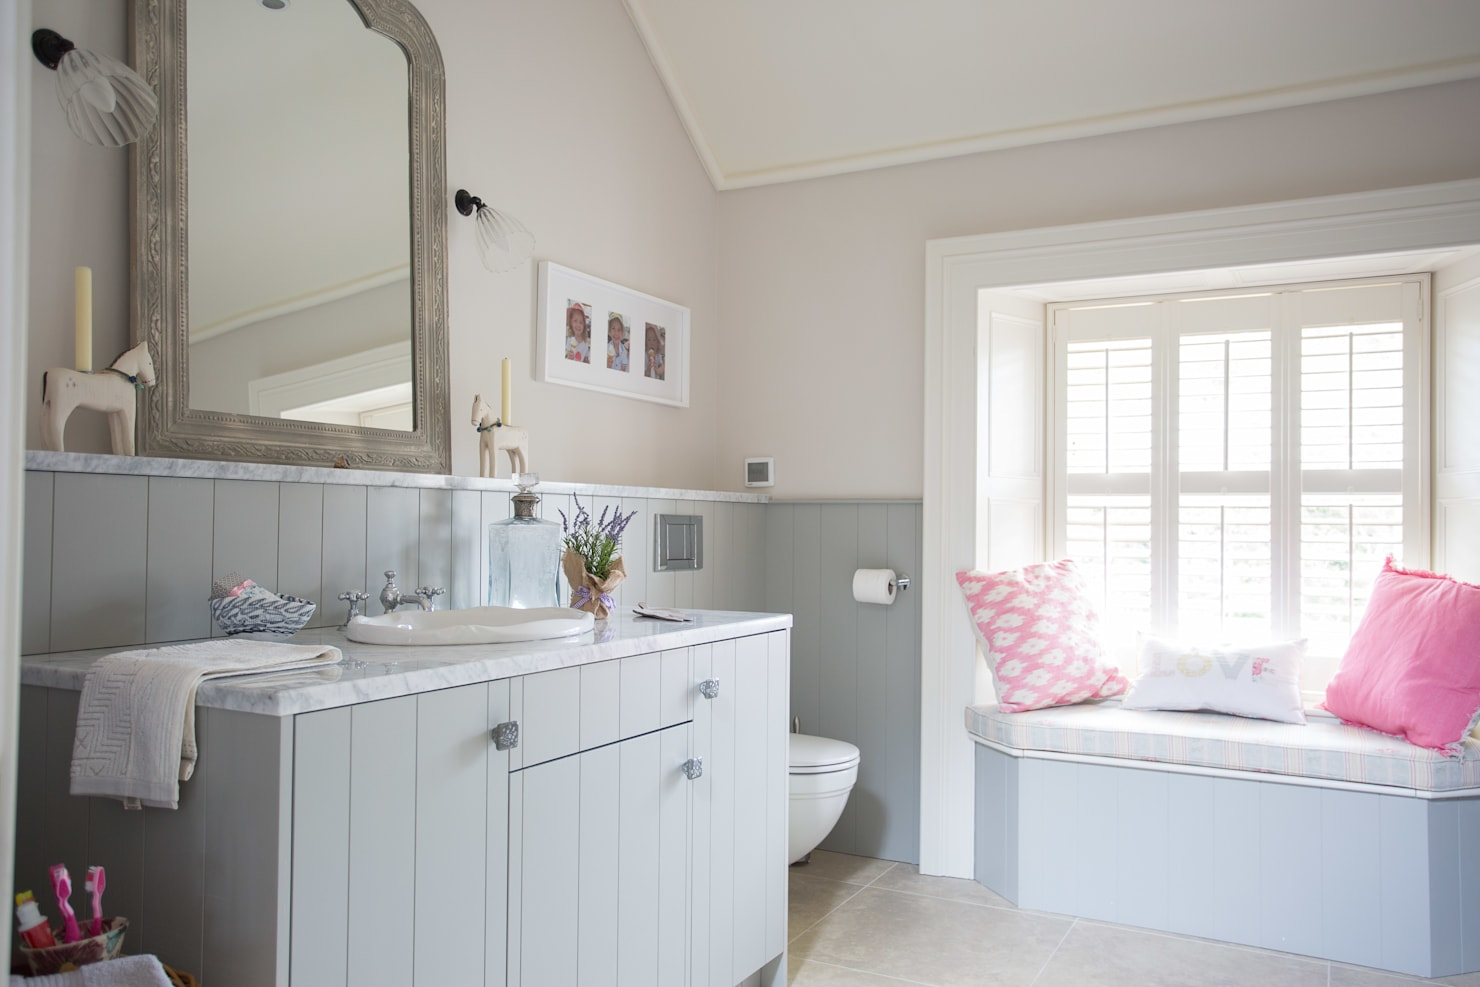 Top tips for creating a cozy bathroom